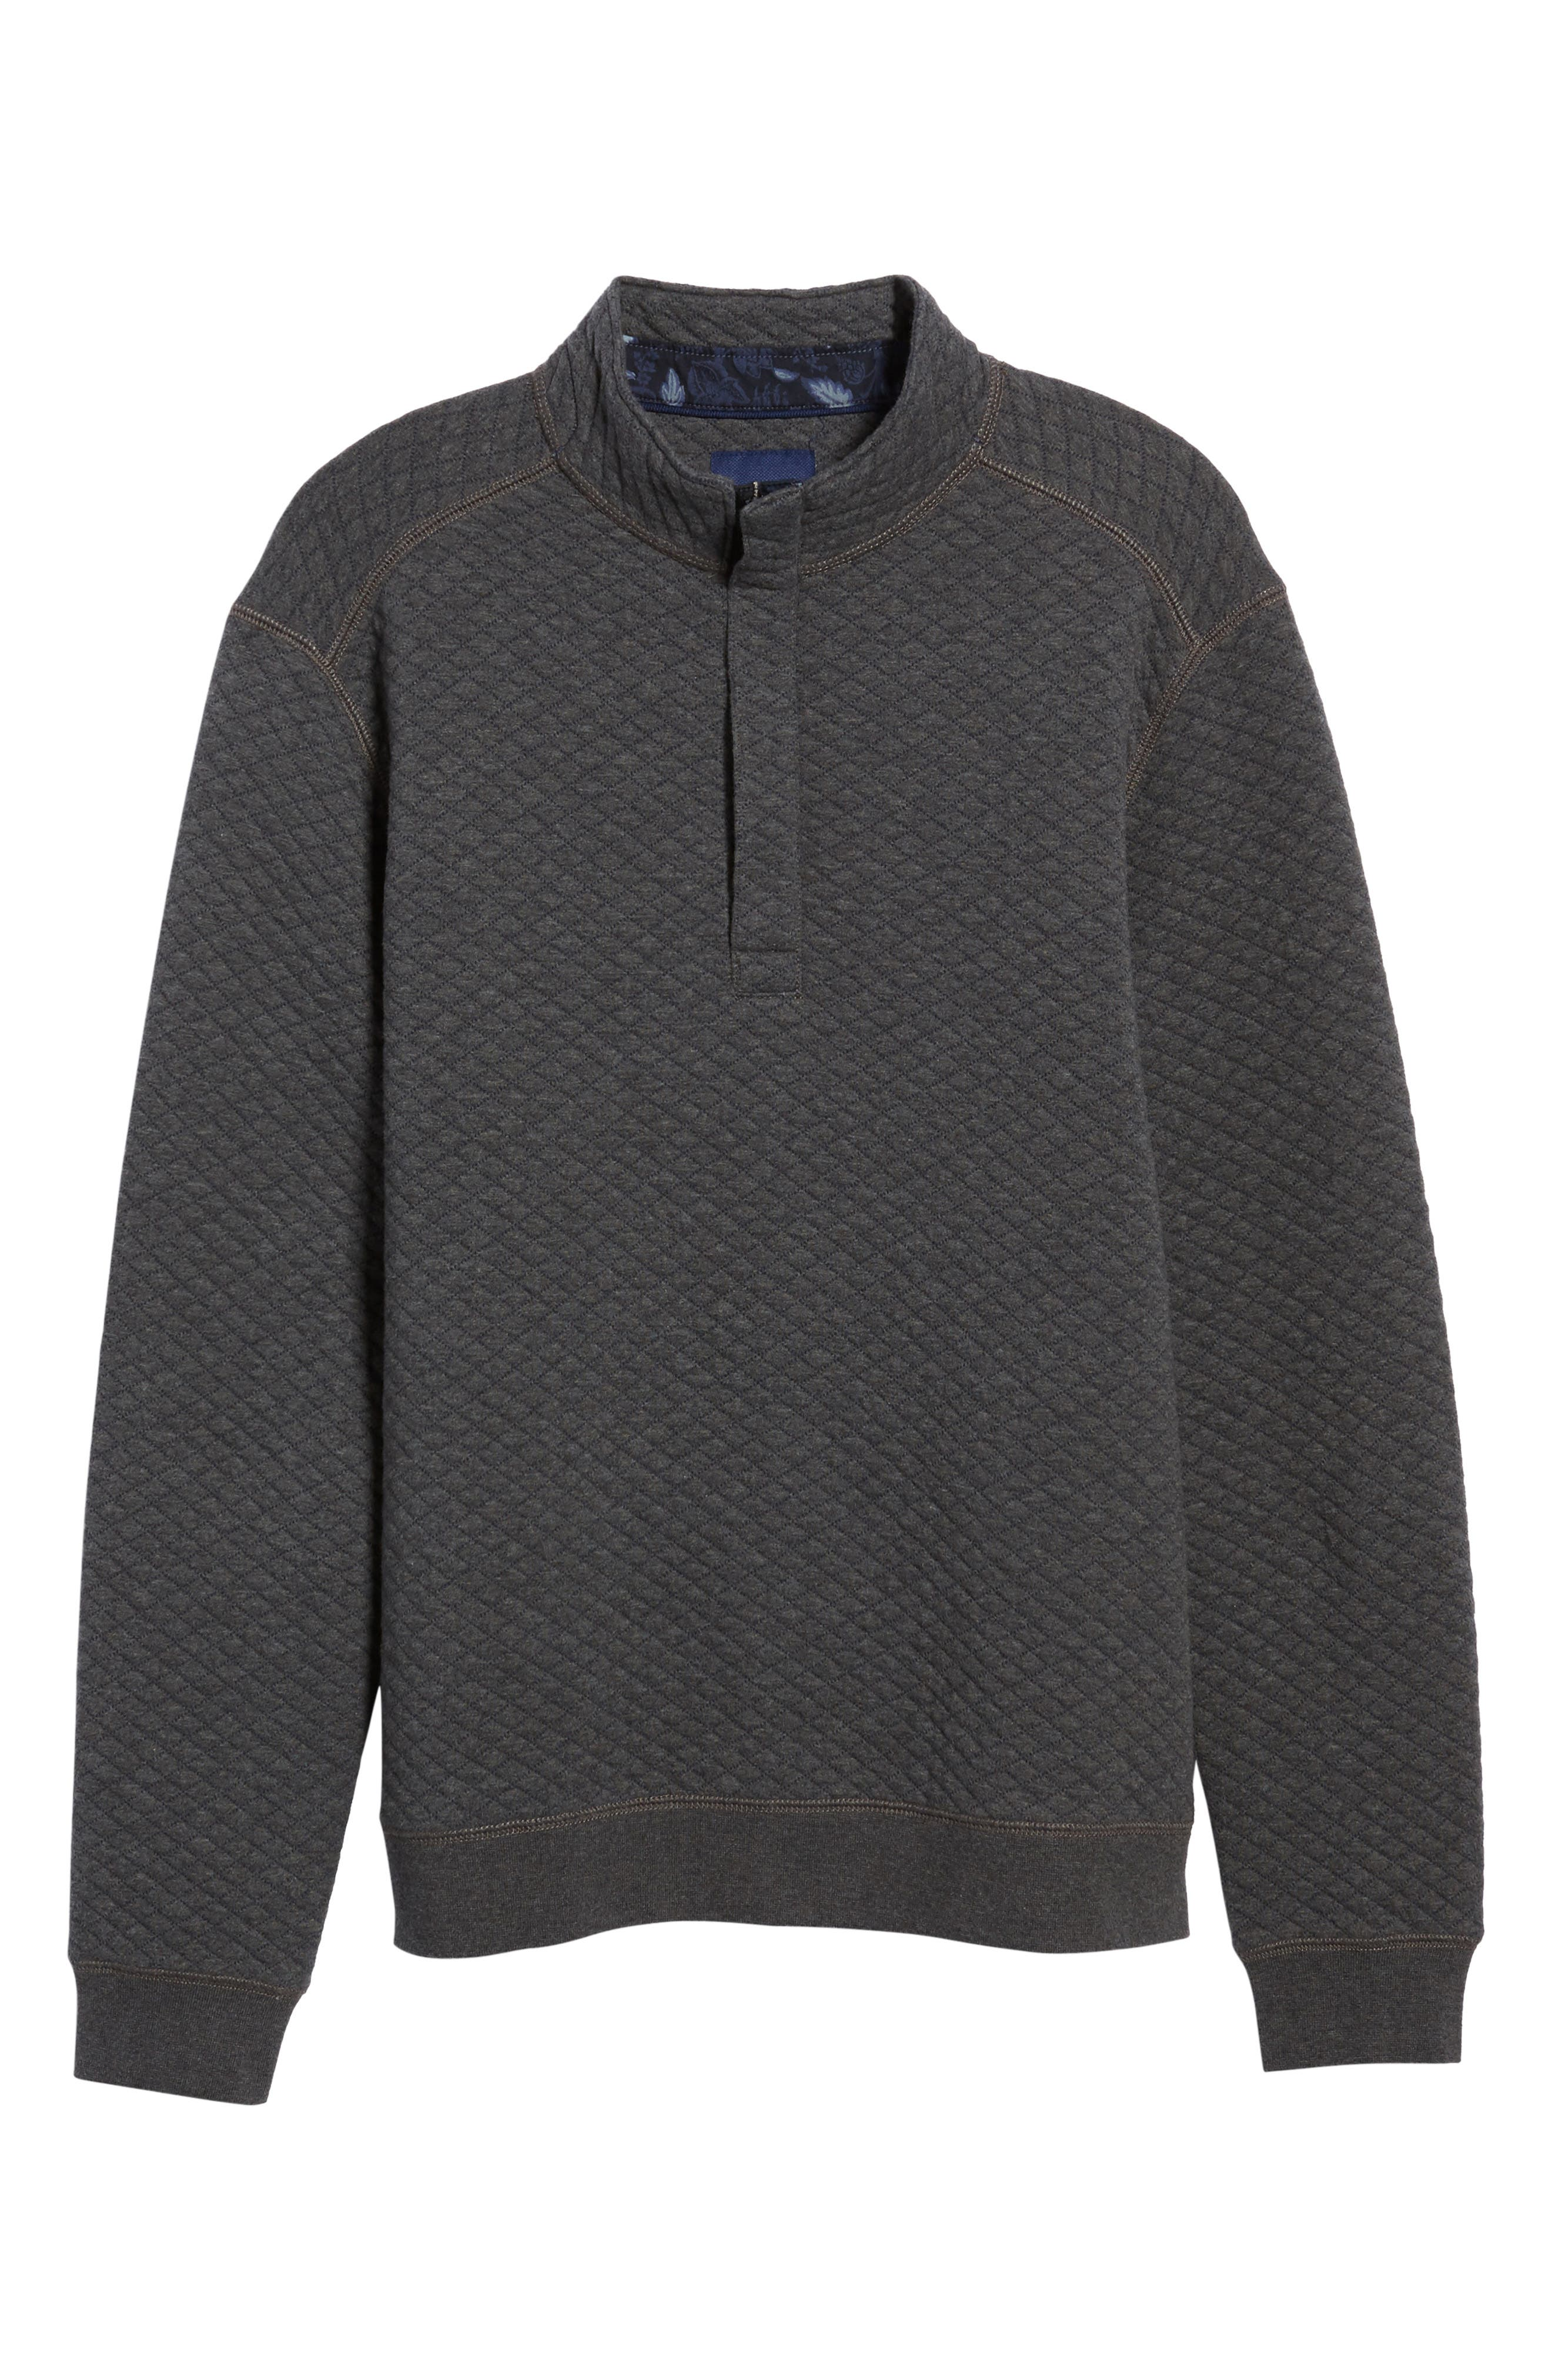 Quiltessential Standard Fit Quarter Zip Pullover,                             Alternate thumbnail 6, color,                             Charcoal Heather